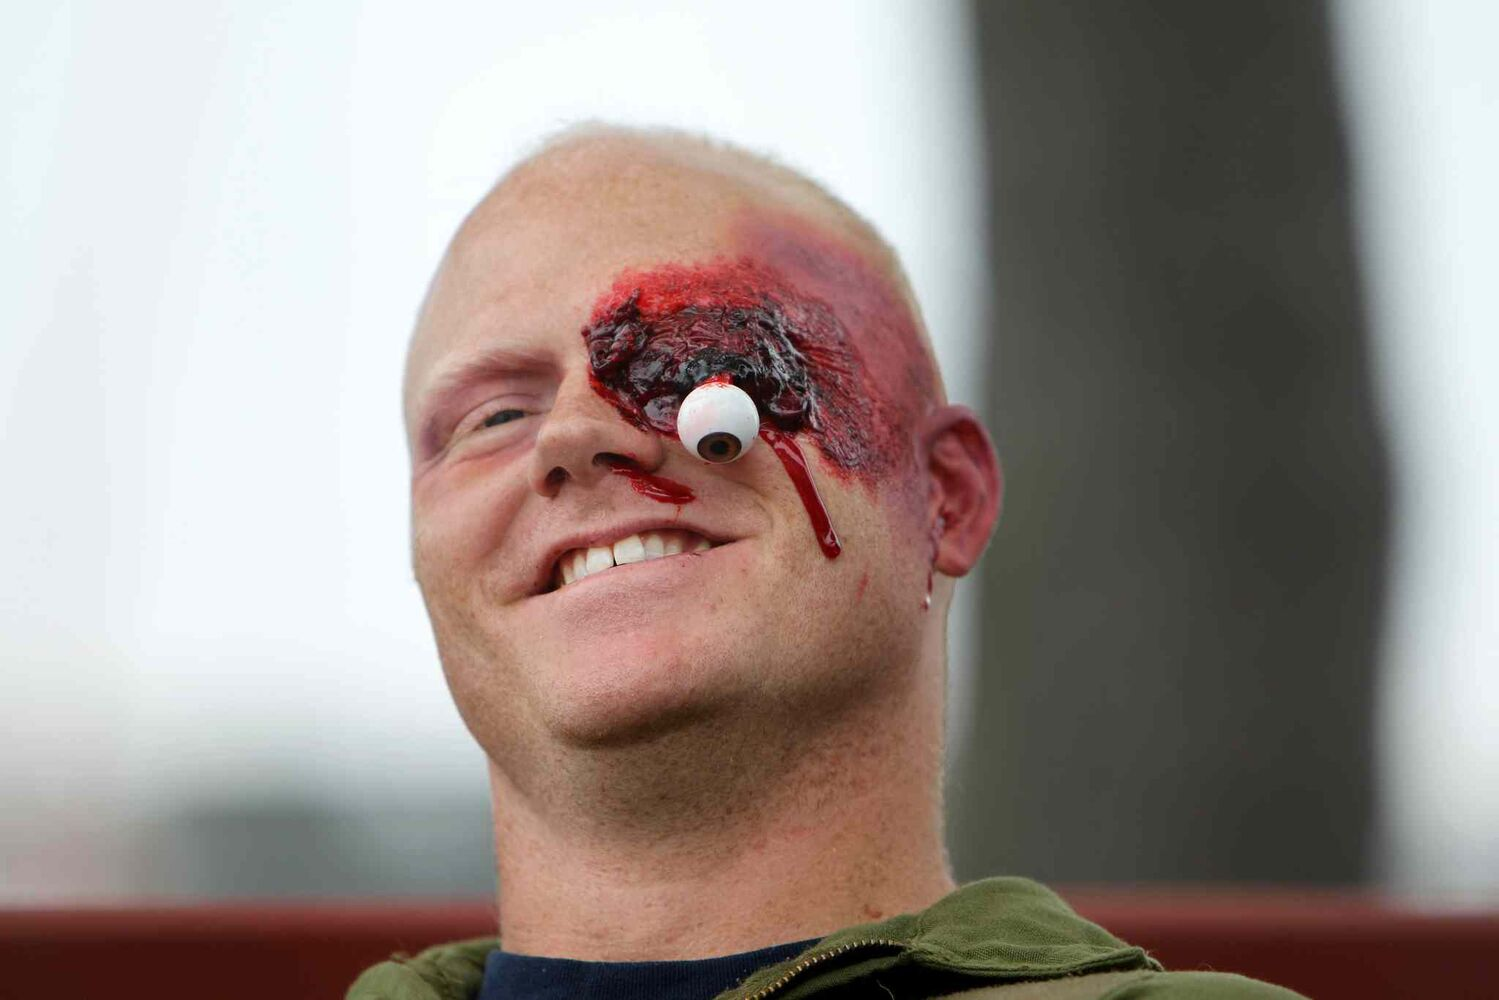 Captain James Grey of Cold Lake, Alta., grins despite his seemingly grim situation. Makeup and prosthetics were applied to give his 'injury' a life-like feel. (Ruth Bonneville / Winnipeg Free Press)